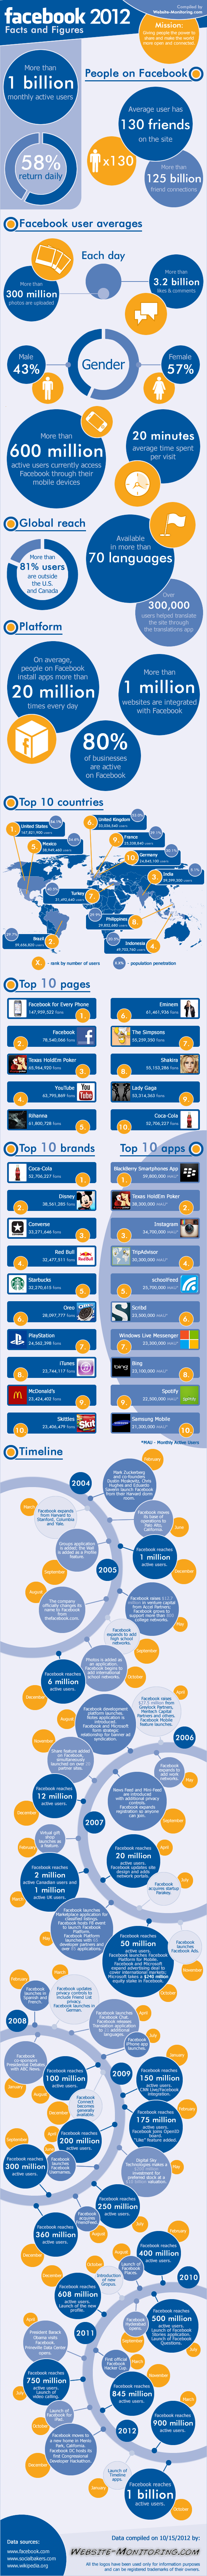 facebook2012-facts-and-figures